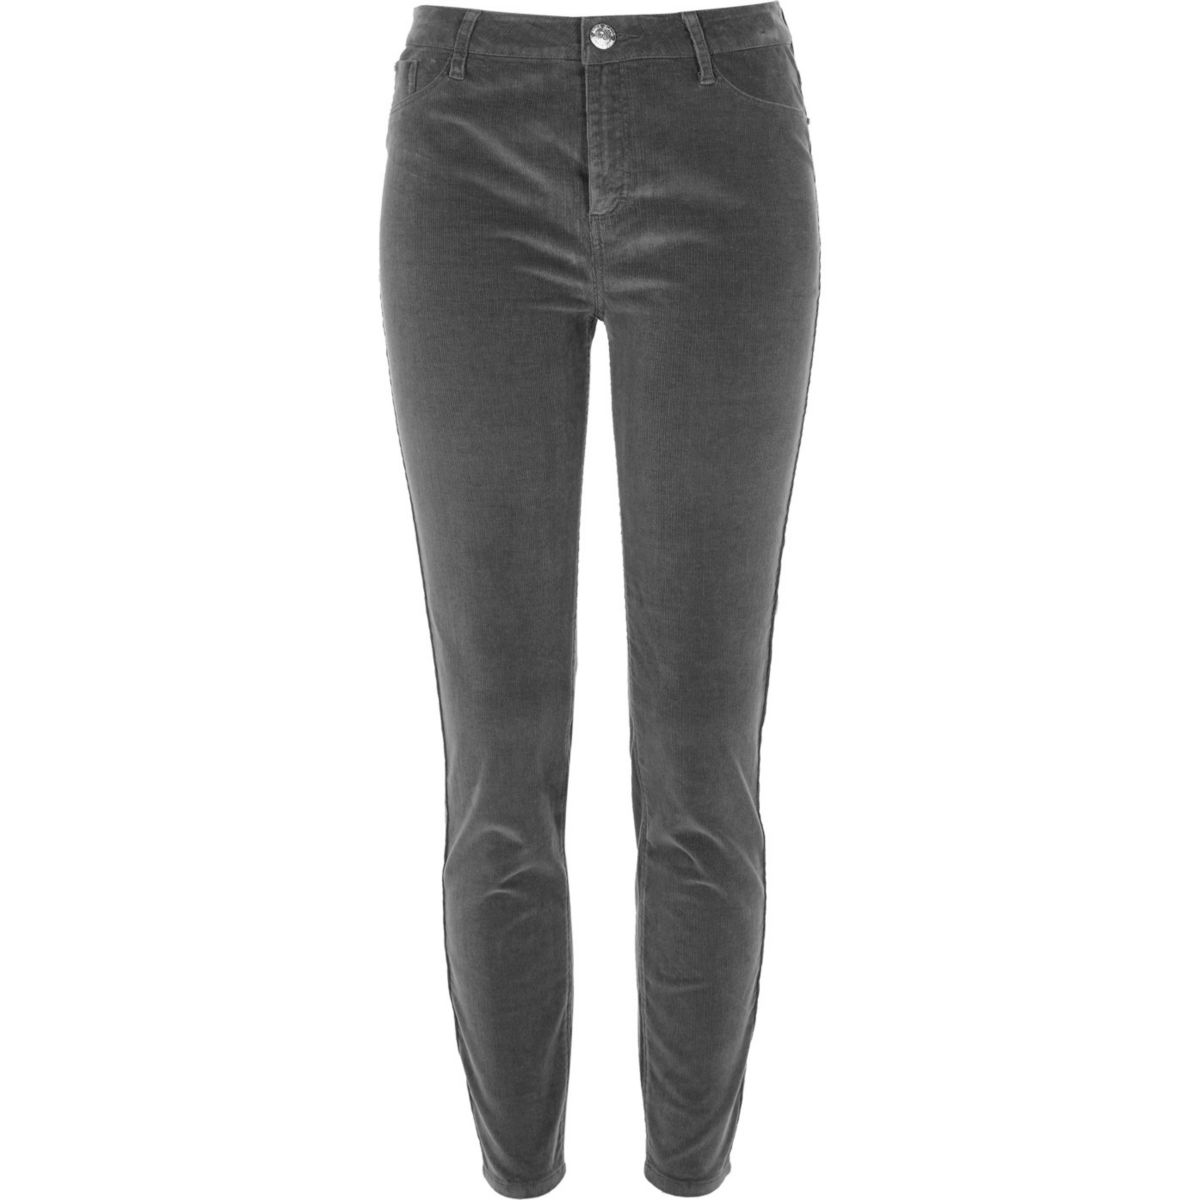 Light brown cord Molly skinny trousers